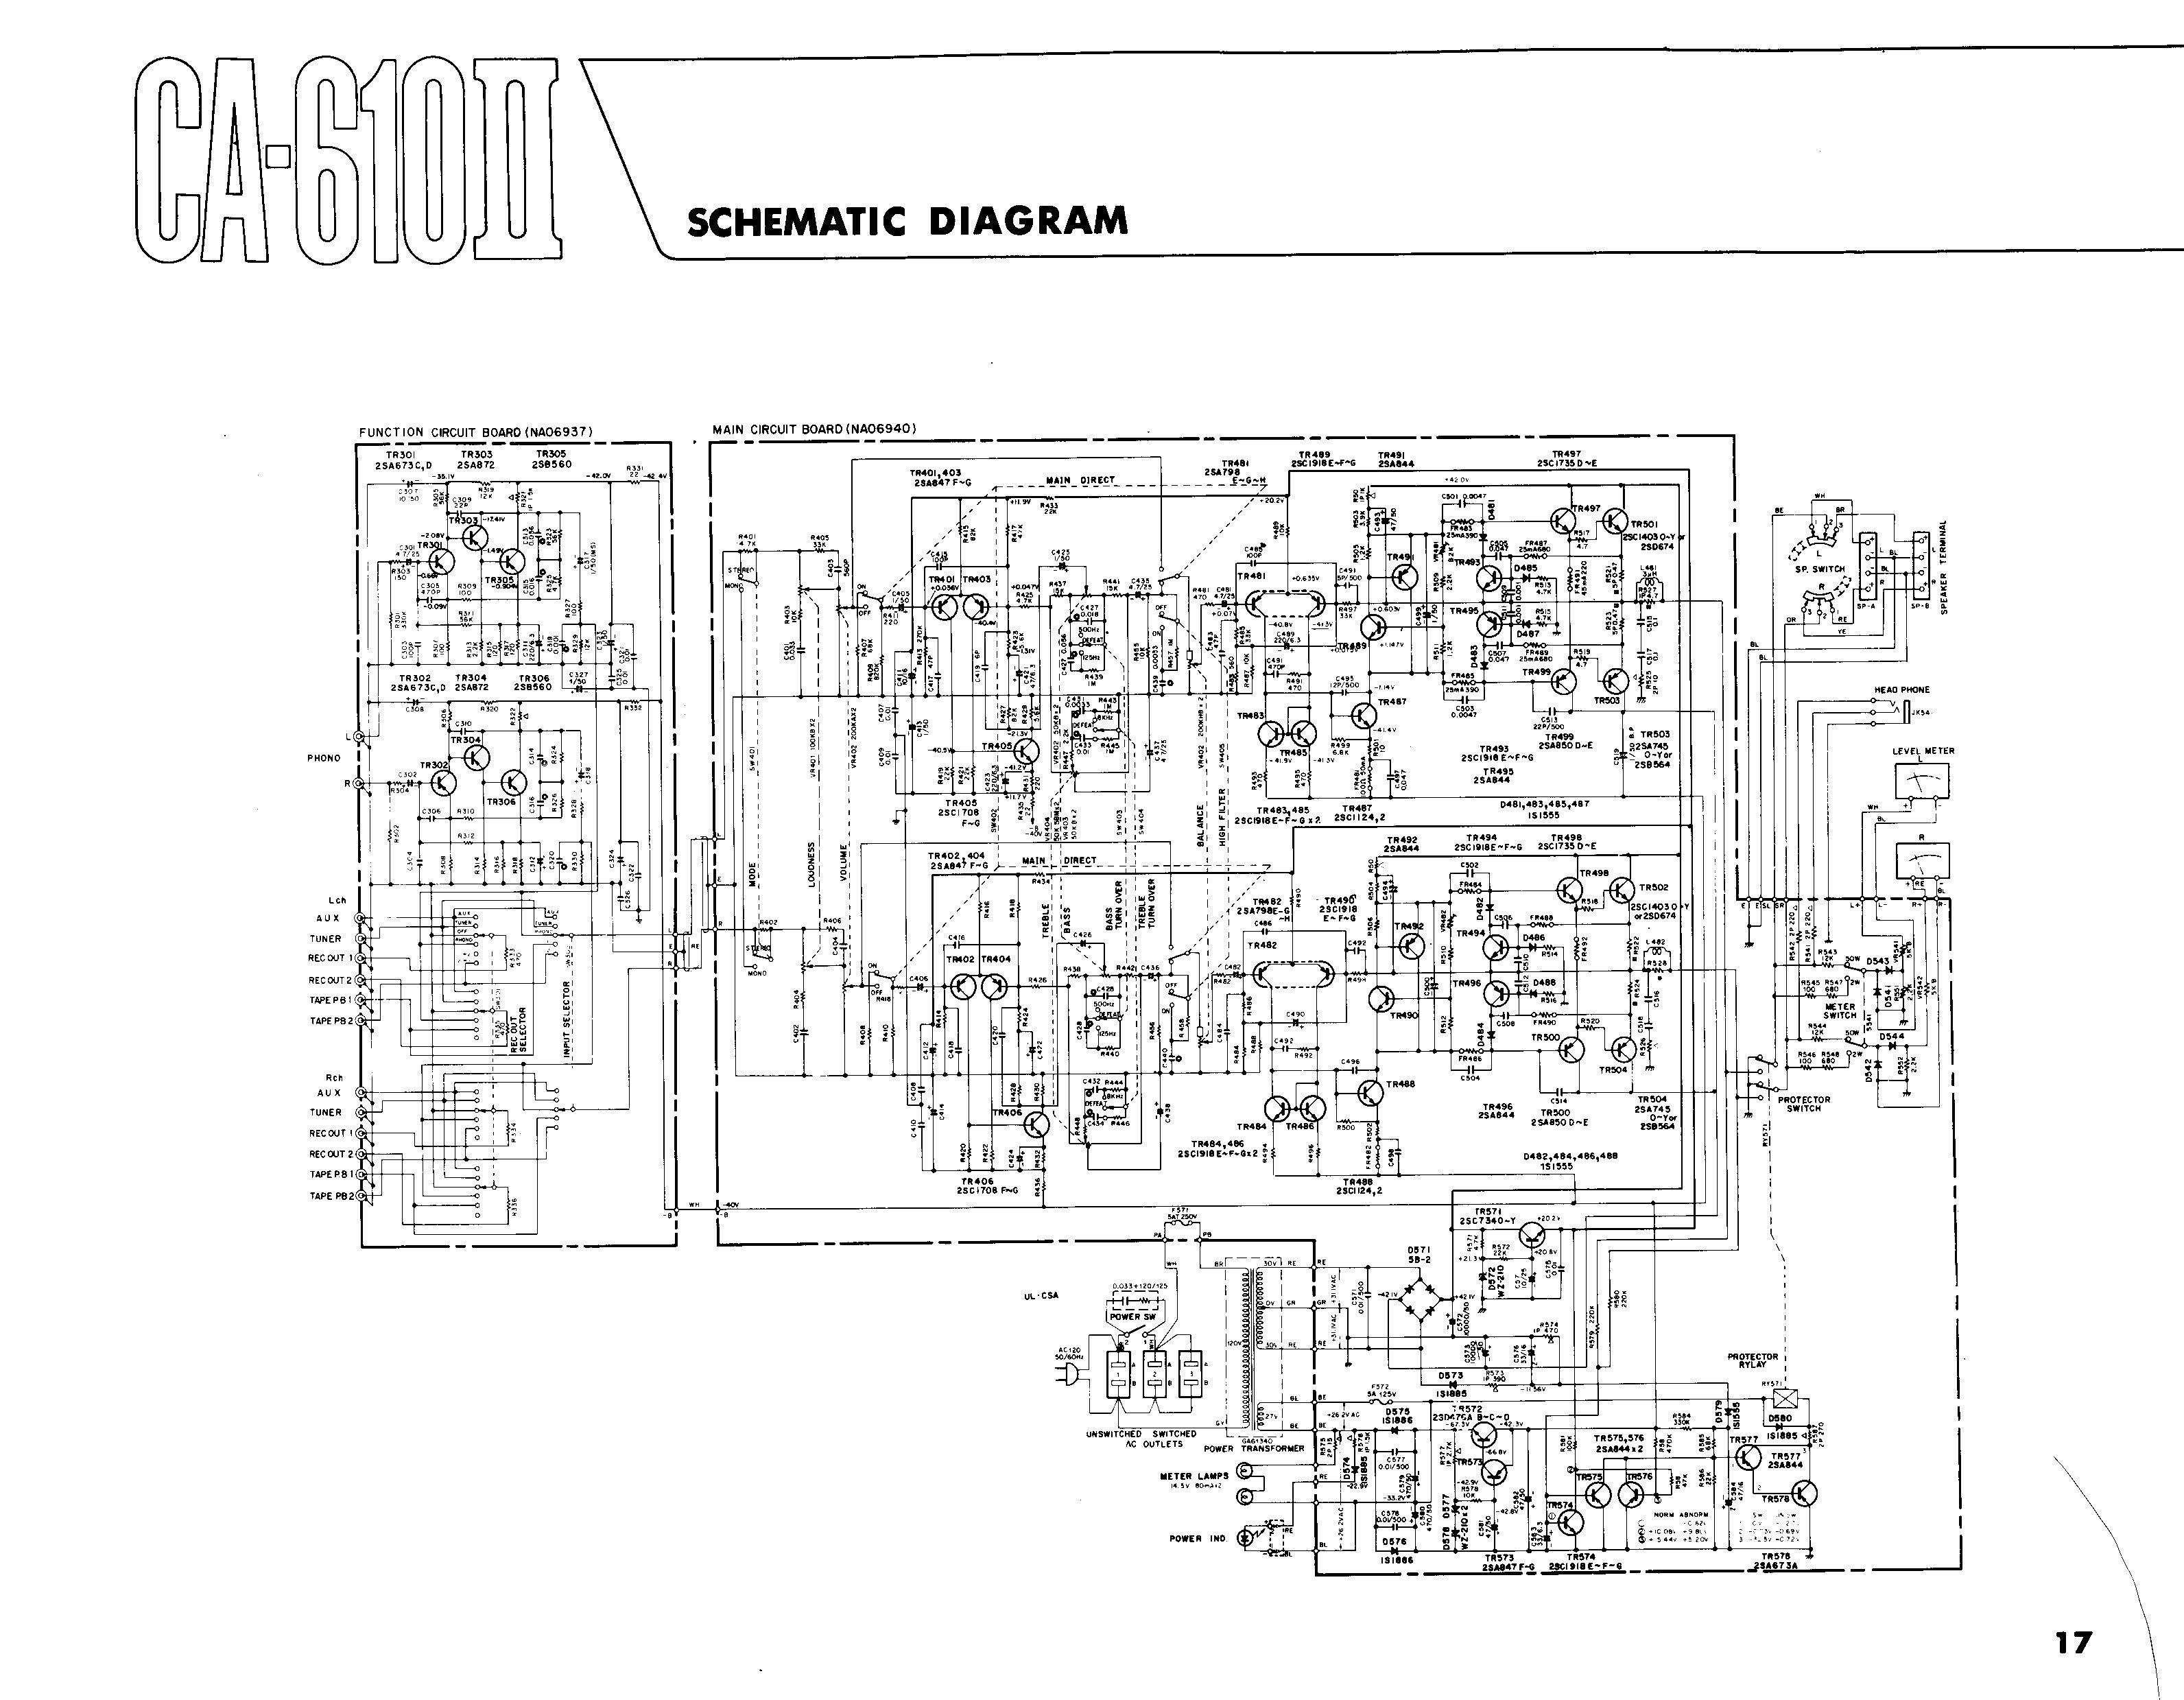 ca 6102ii s index of yamaha yamaha schematic diagram at n-0.co